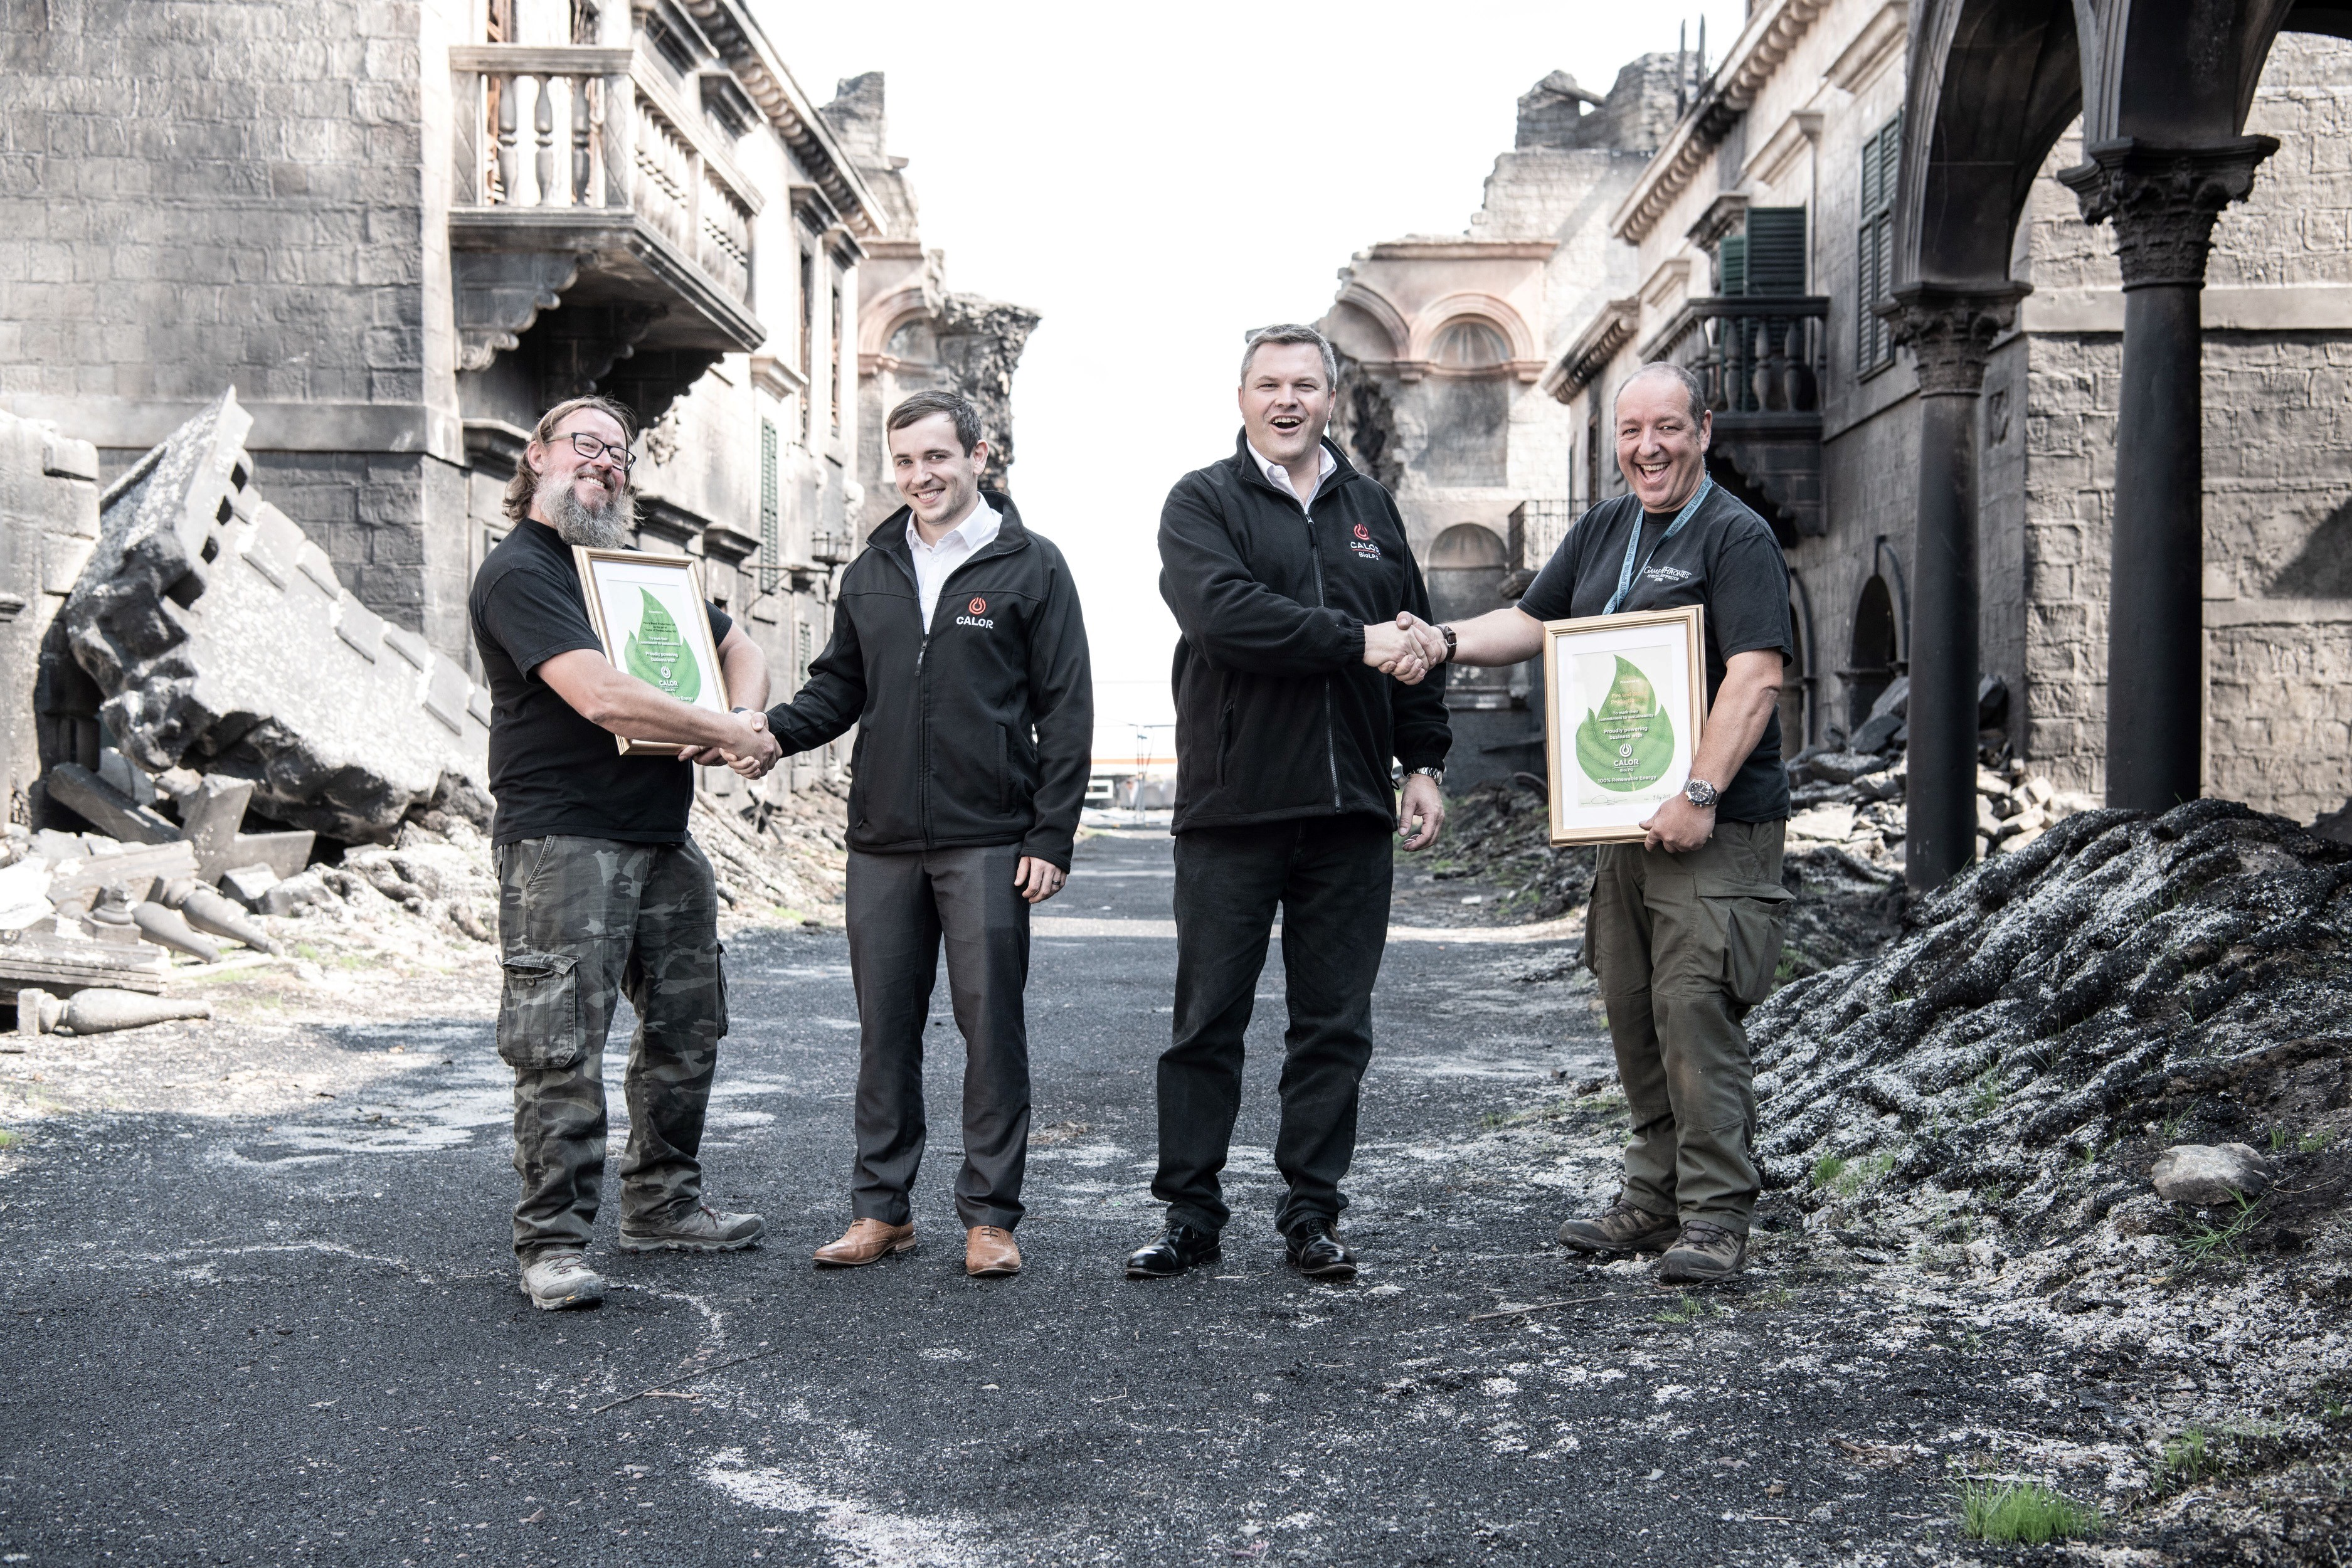 Calor Staff presenting BioLPG Certificates to team of Fire and Blood Production